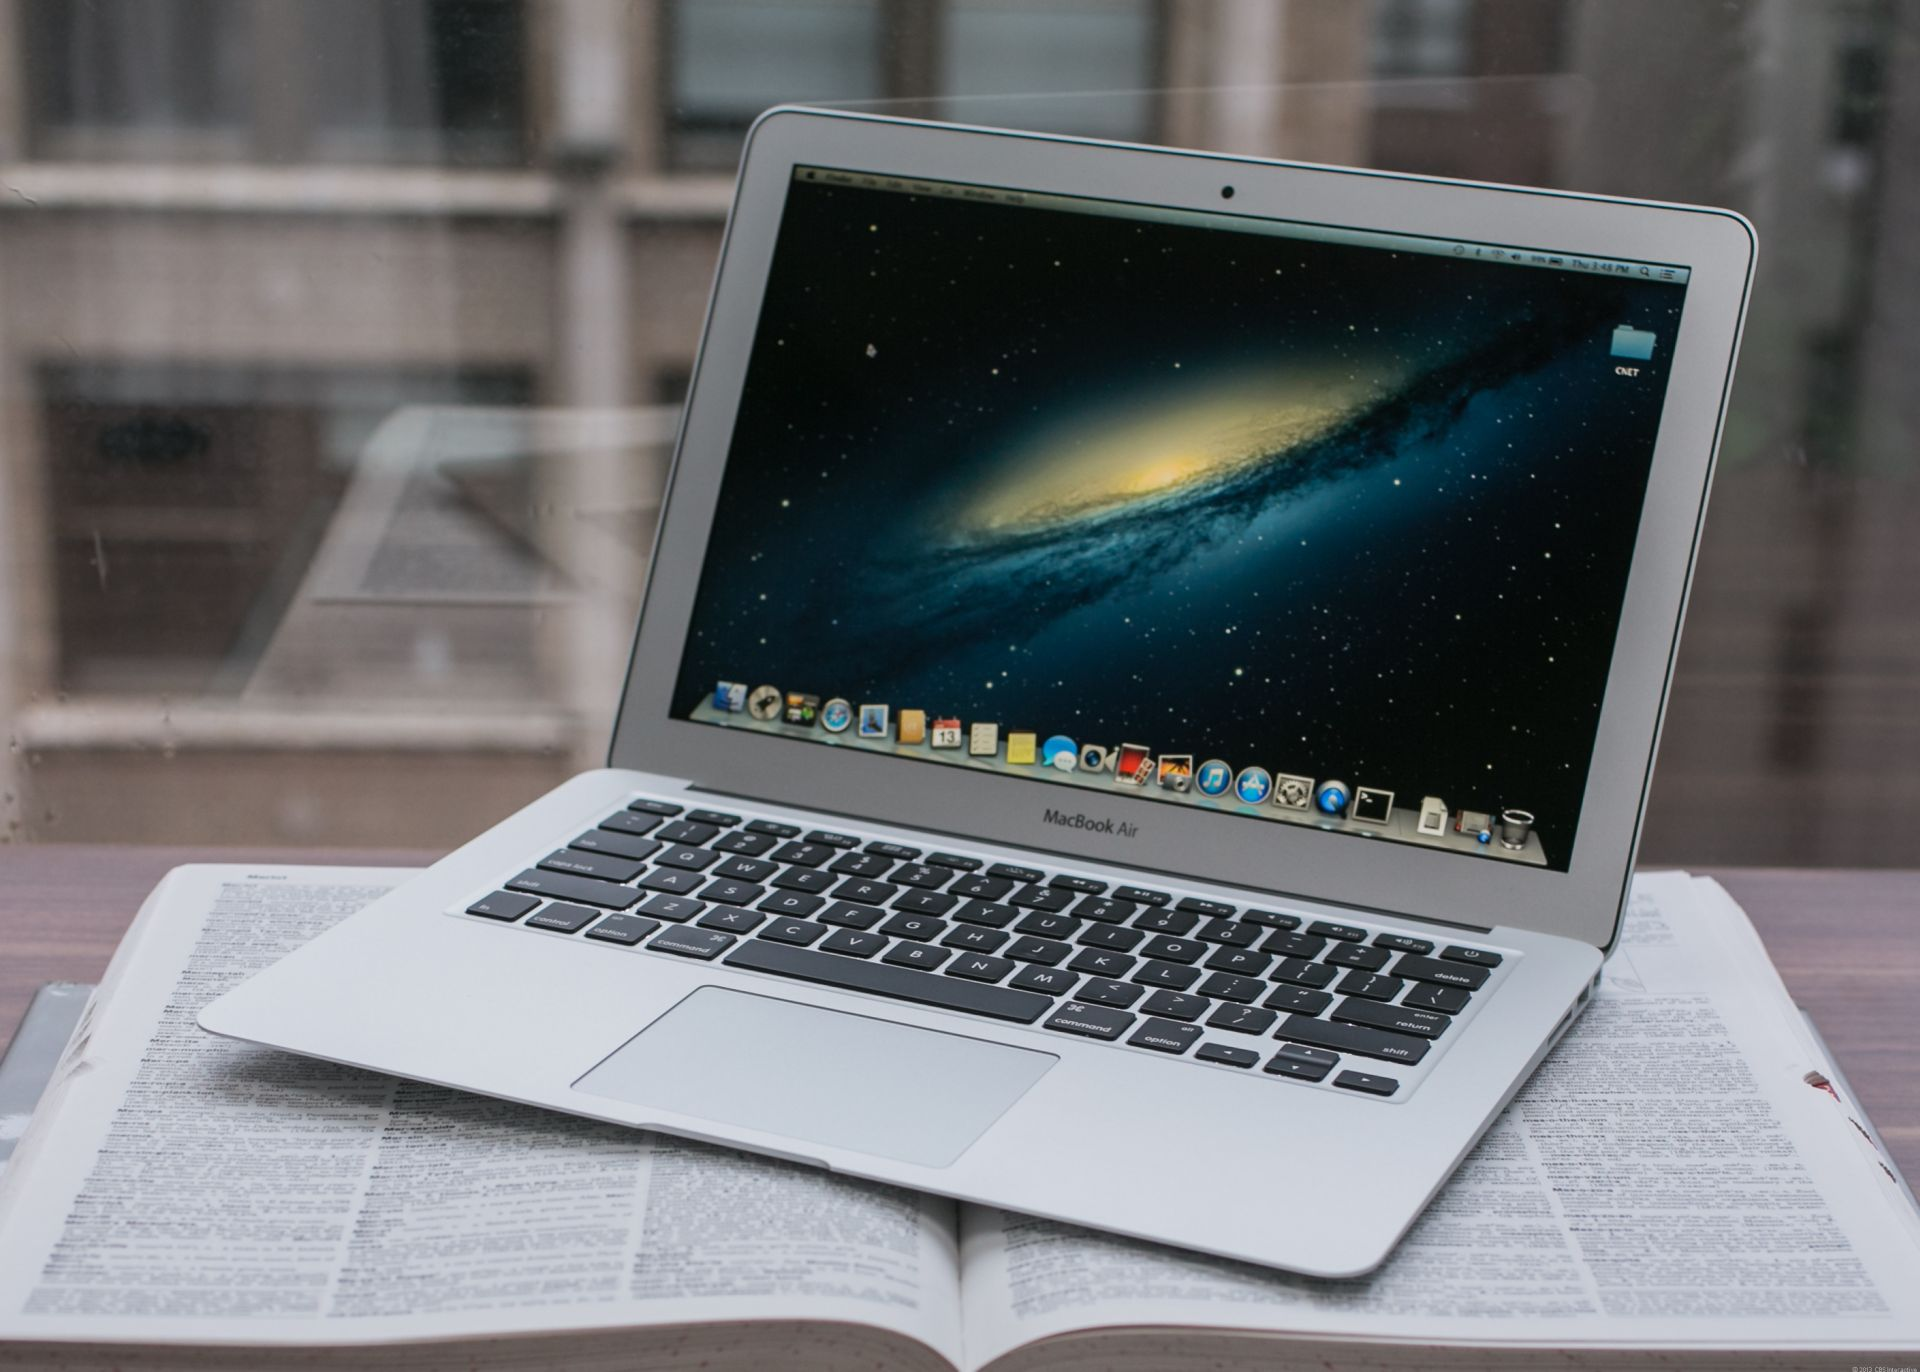 apple macbook air 13 zoll im test kaum neuerungen aber extrem ausdauernd. Black Bedroom Furniture Sets. Home Design Ideas